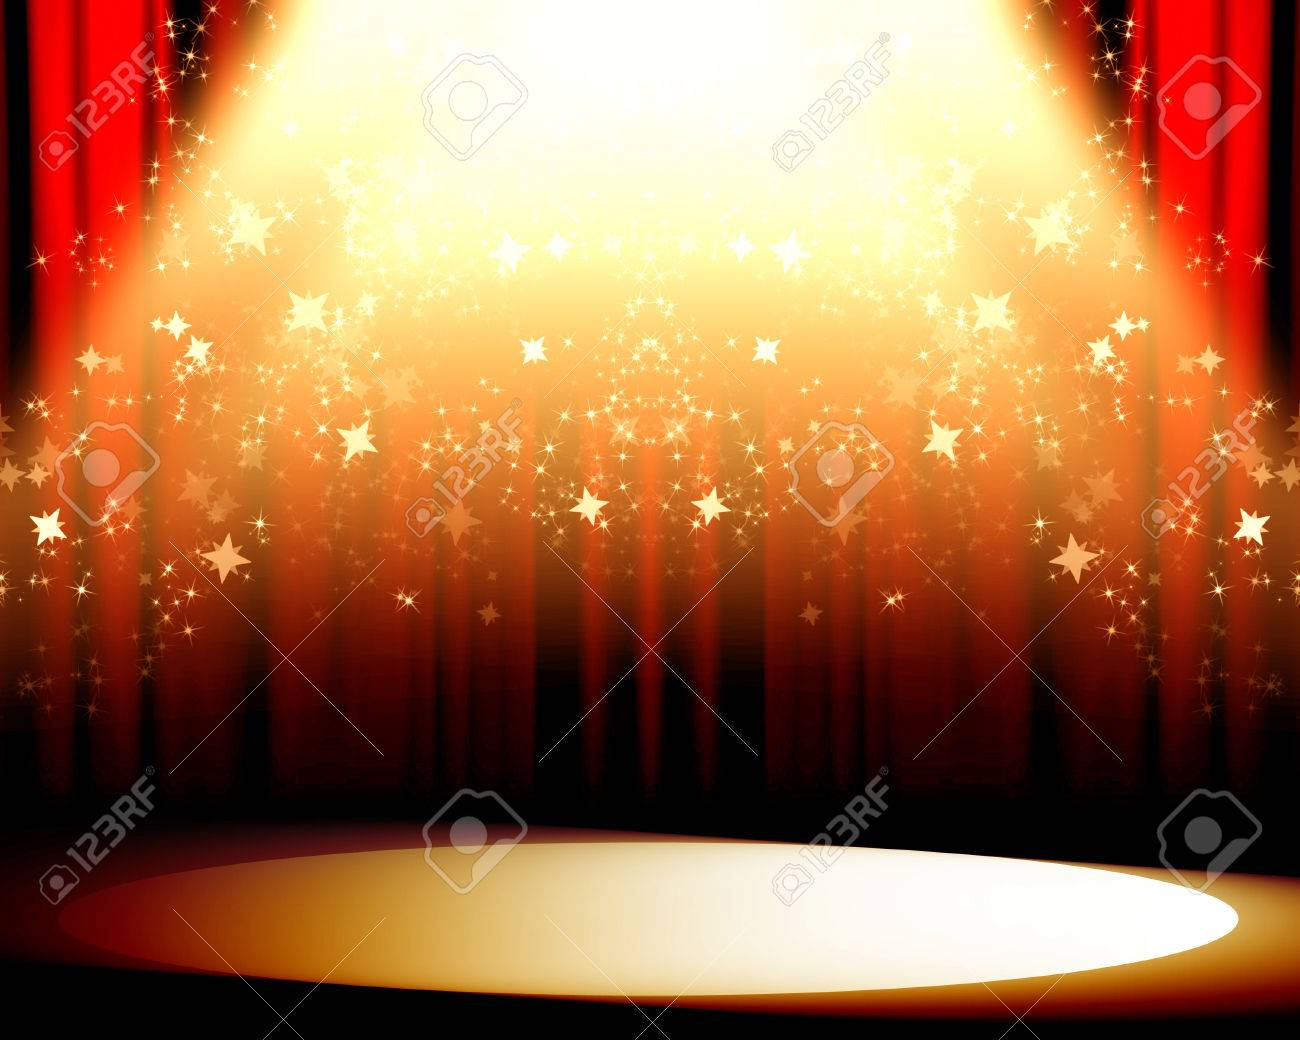 Stage curtains spotlight - Red Movie Or Theater Curtains With A Bright Spotlight On It Stock Photo 26392829